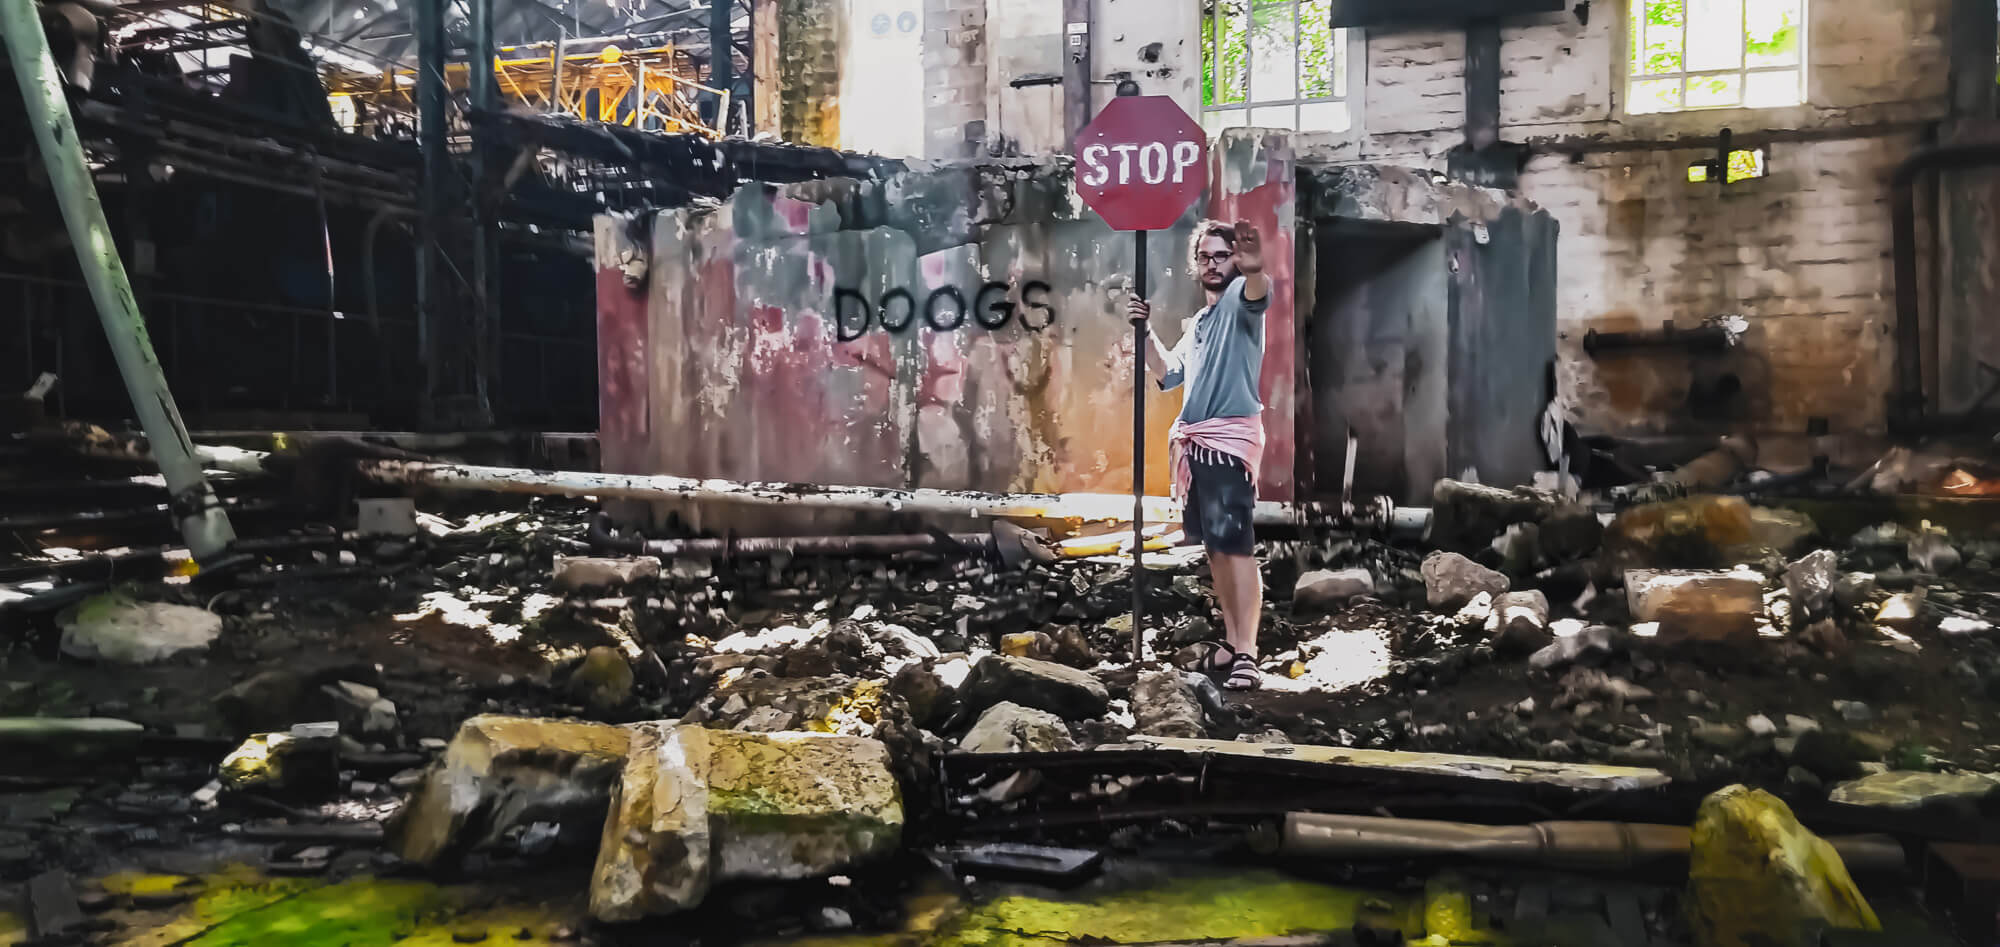 Man finds stop sign while exploring abandonded hidden gems in Mauritius